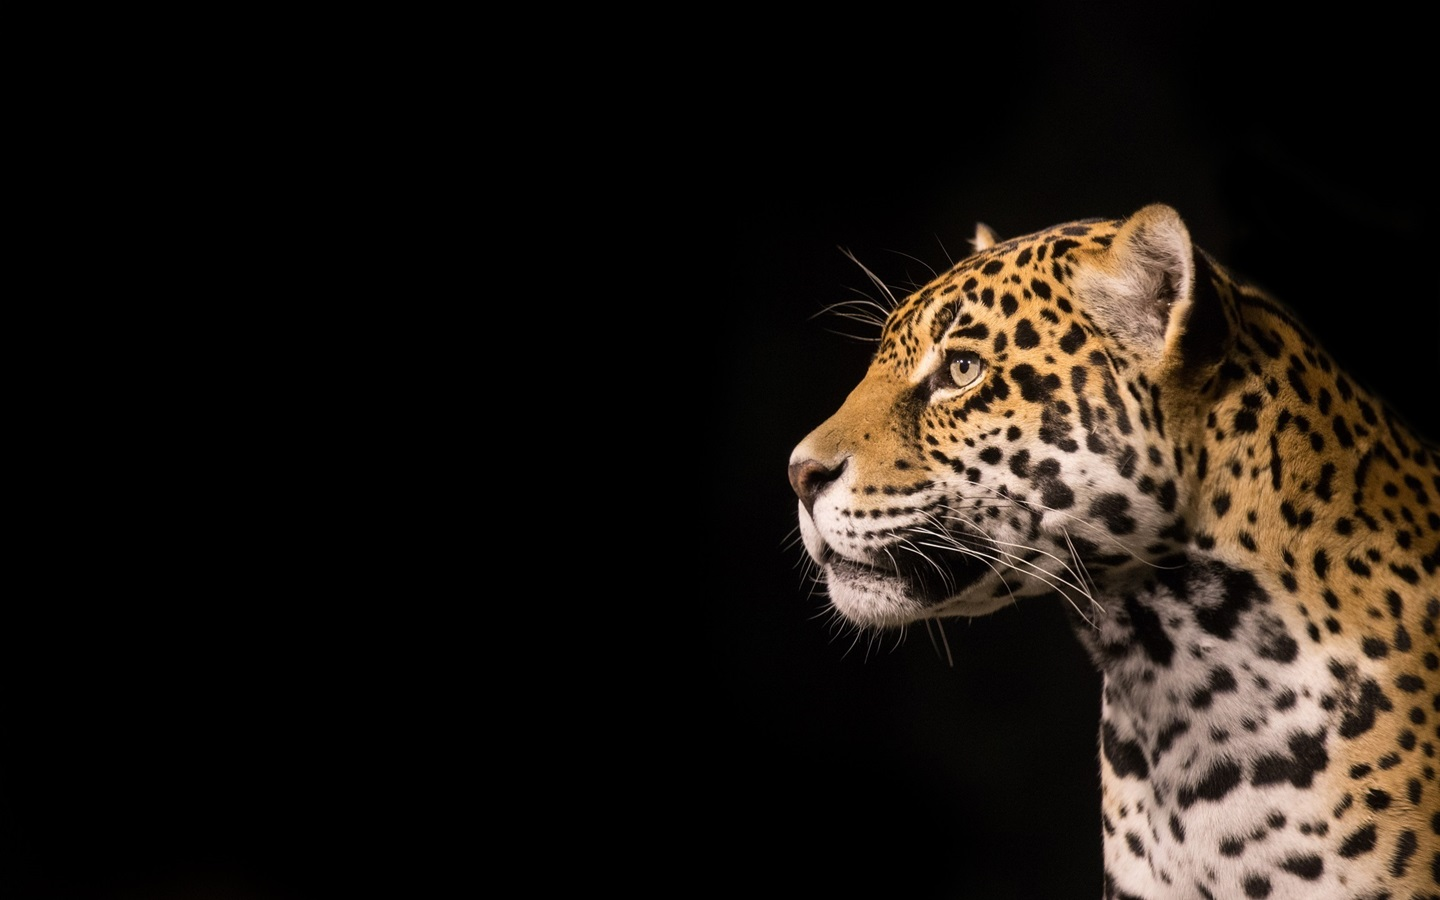 Fondos de pantalla predator jaguar fondo negro 1920x1200 - Jaguar animal hd wallpapers ...